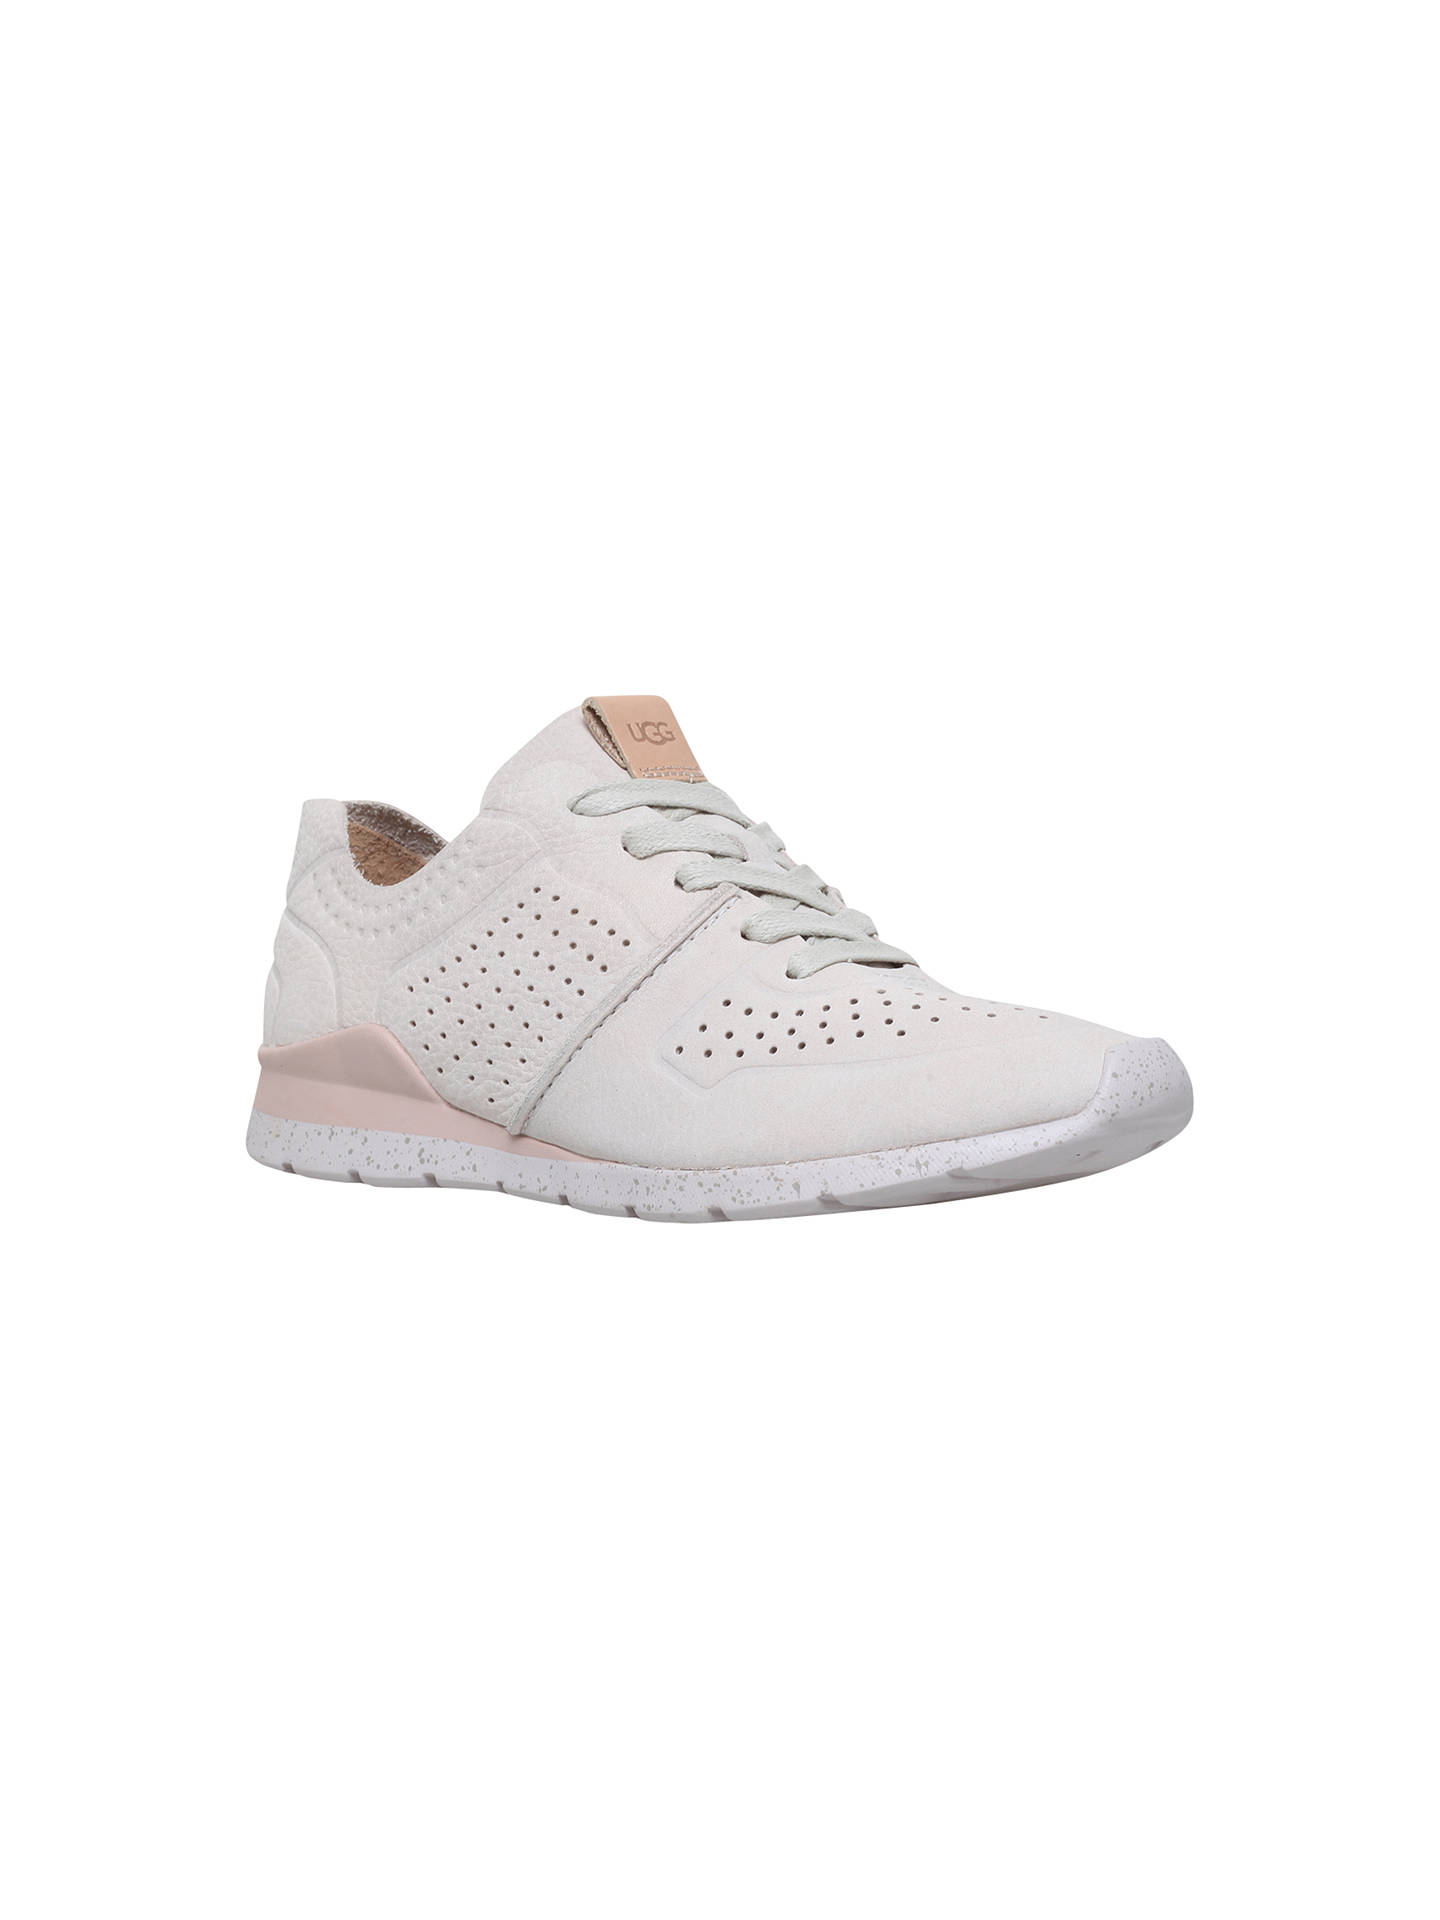 4887c6e6057 UGG Tye Lace Up Trainers, Winter White at John Lewis & Partners